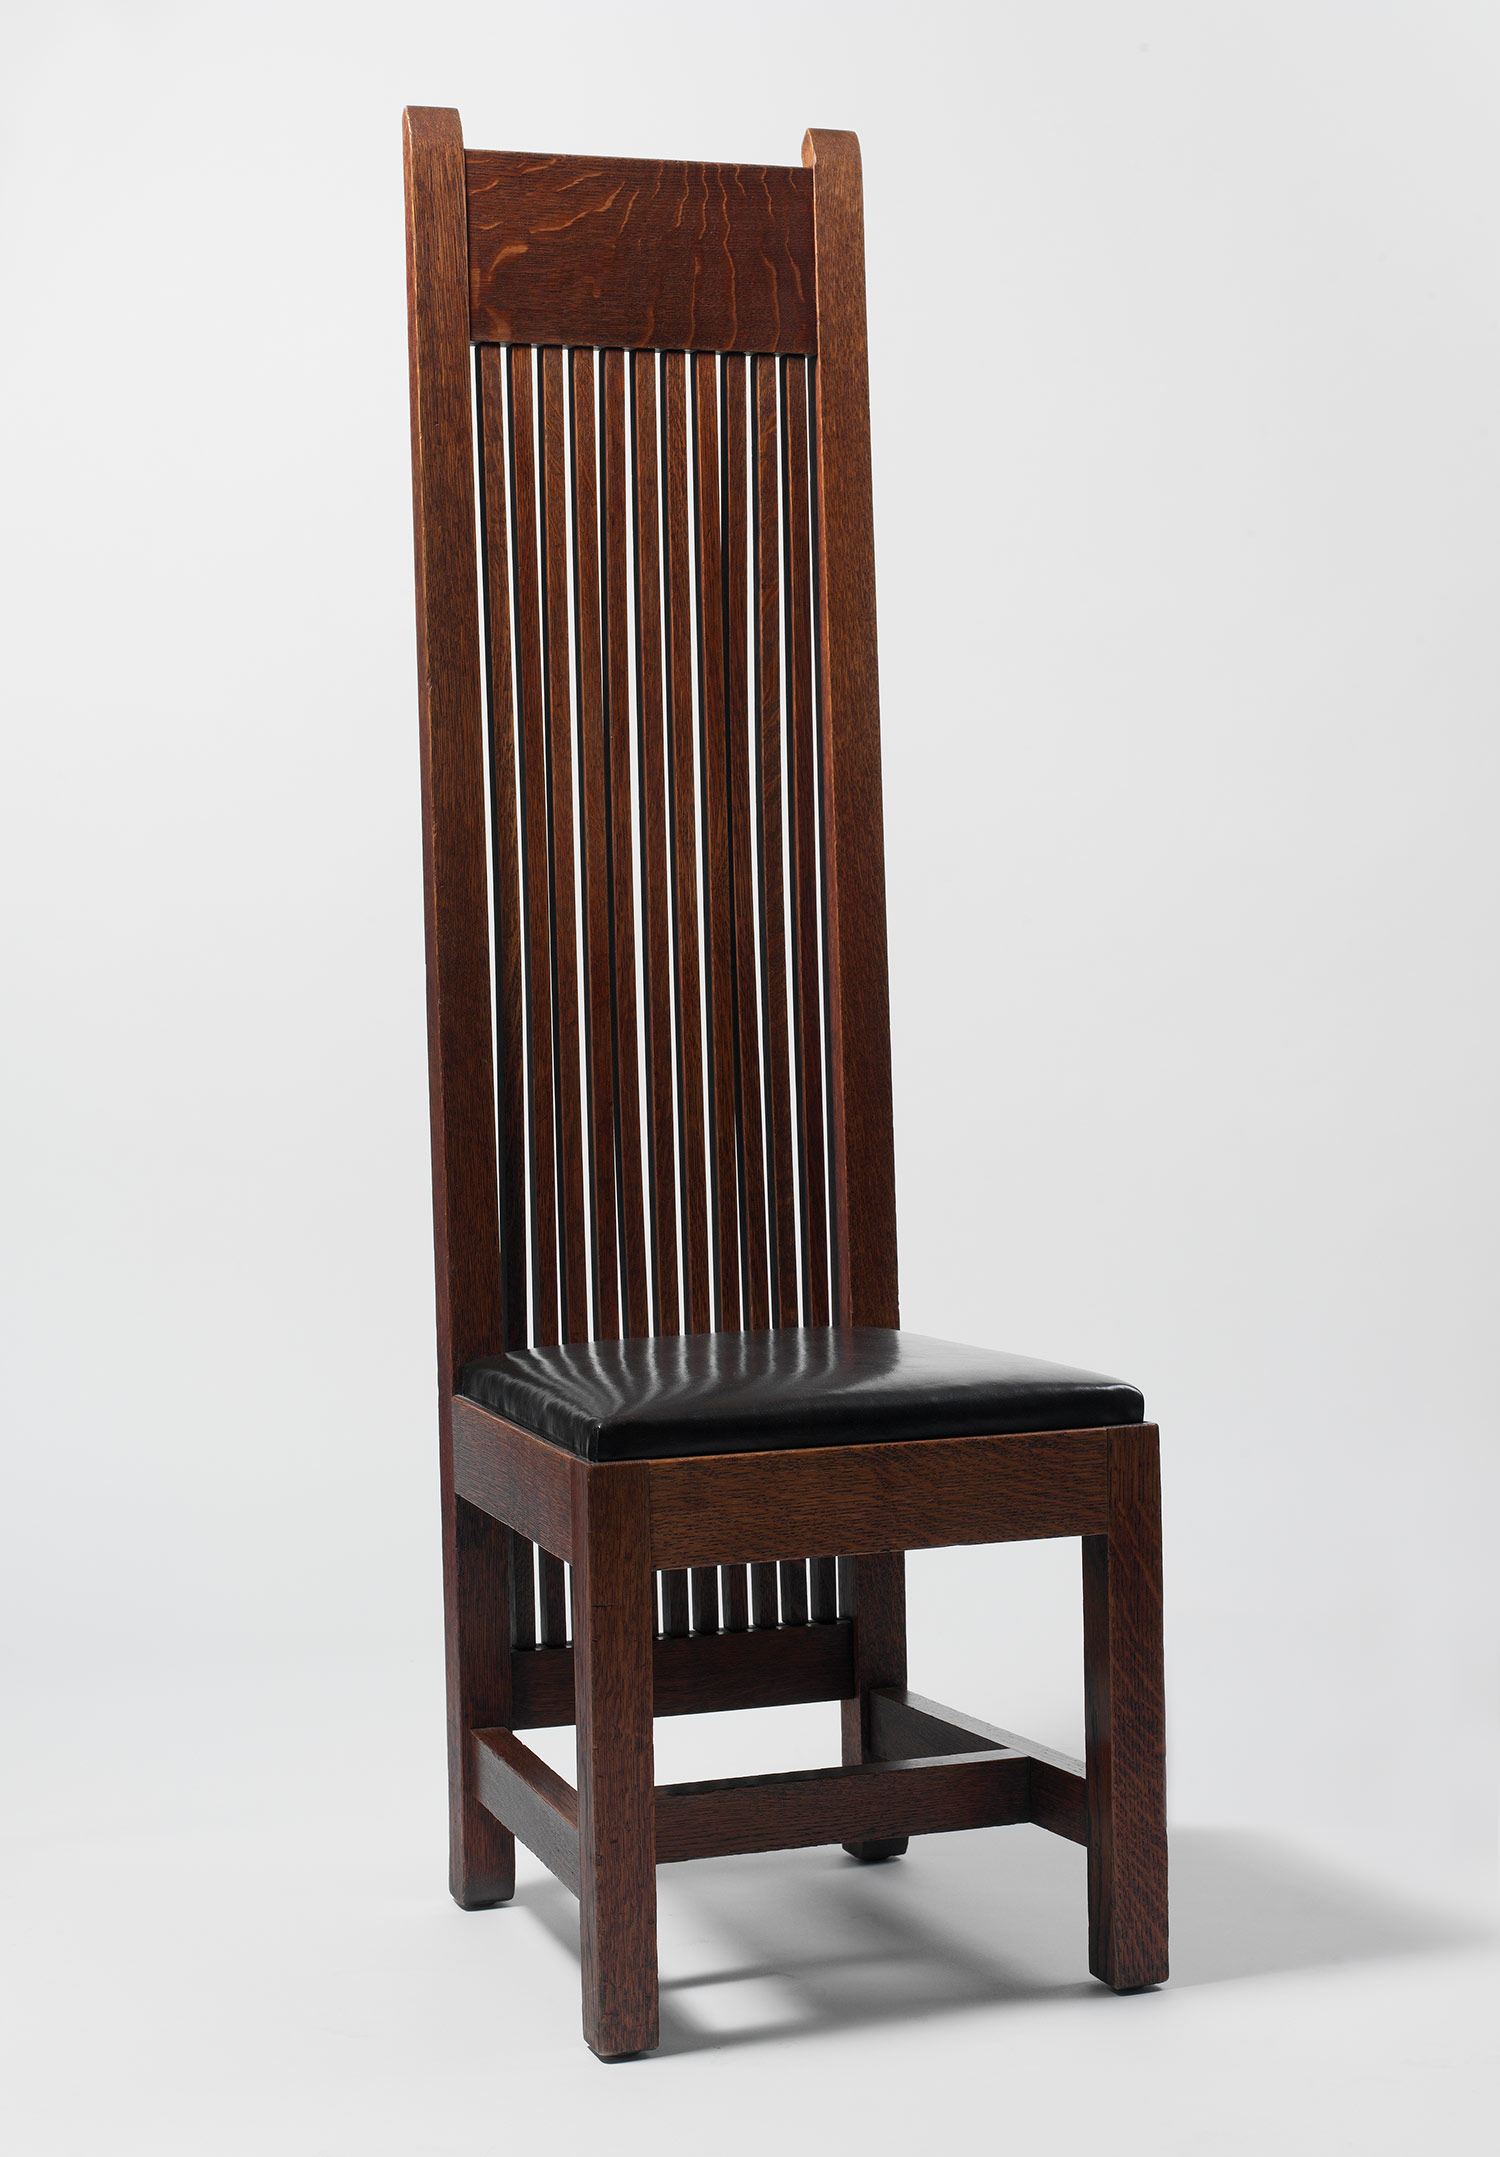 Frank Lloyd Wright Chairs Frank Lloyd Wright 18671959 Thematic Essay